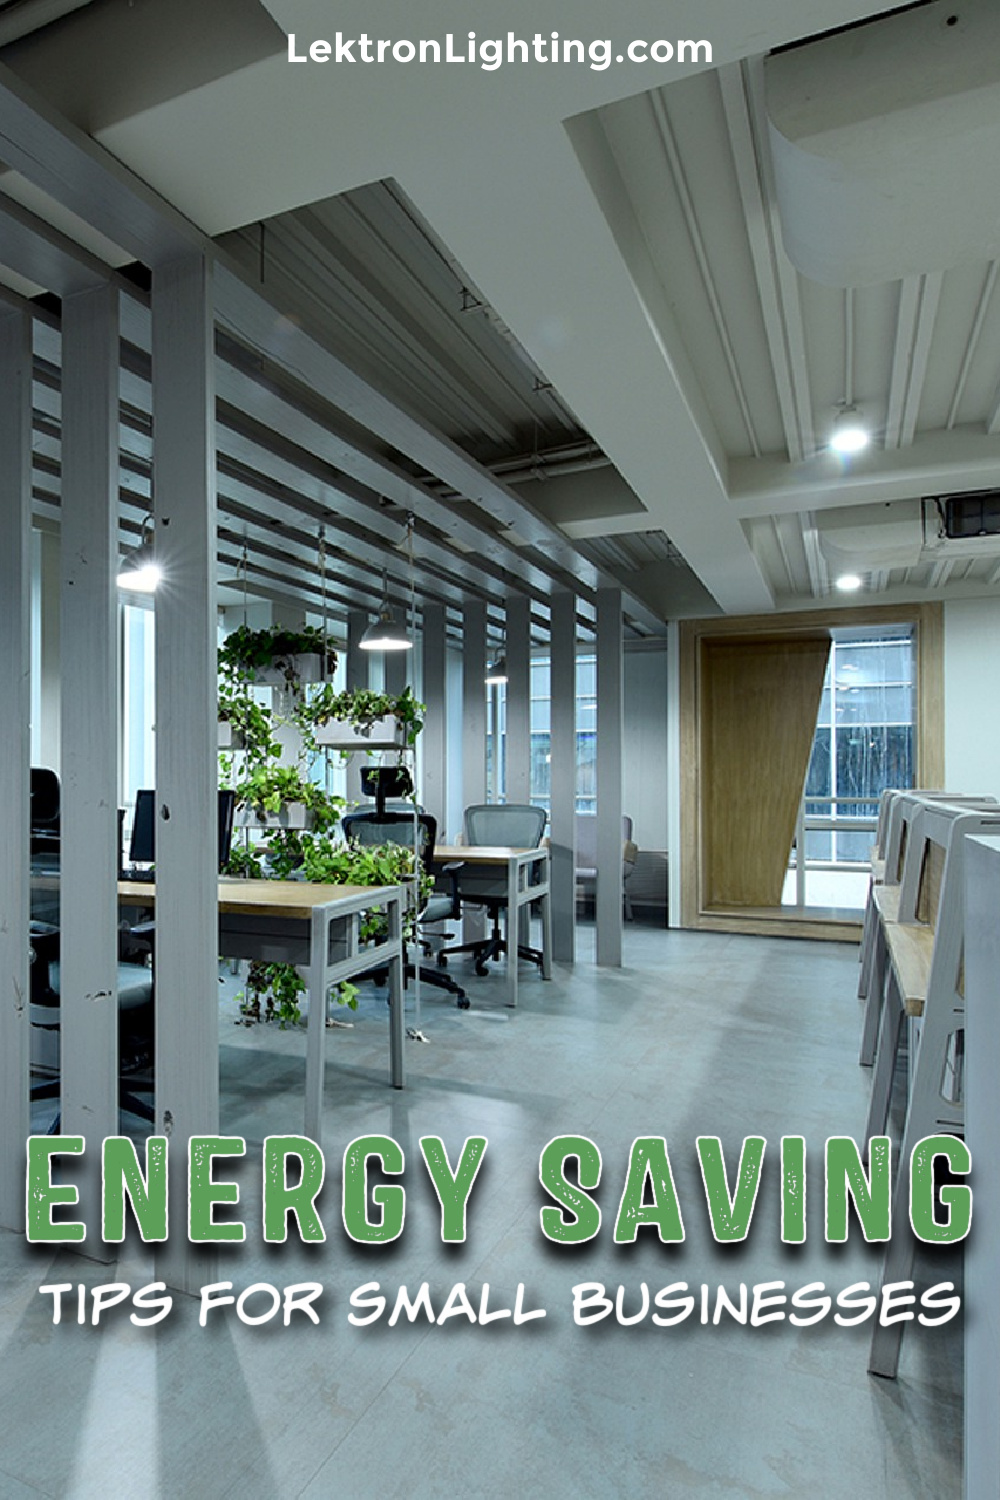 Energy saving products for your business will make enough of a difference in the bottom line to be more than worth it.